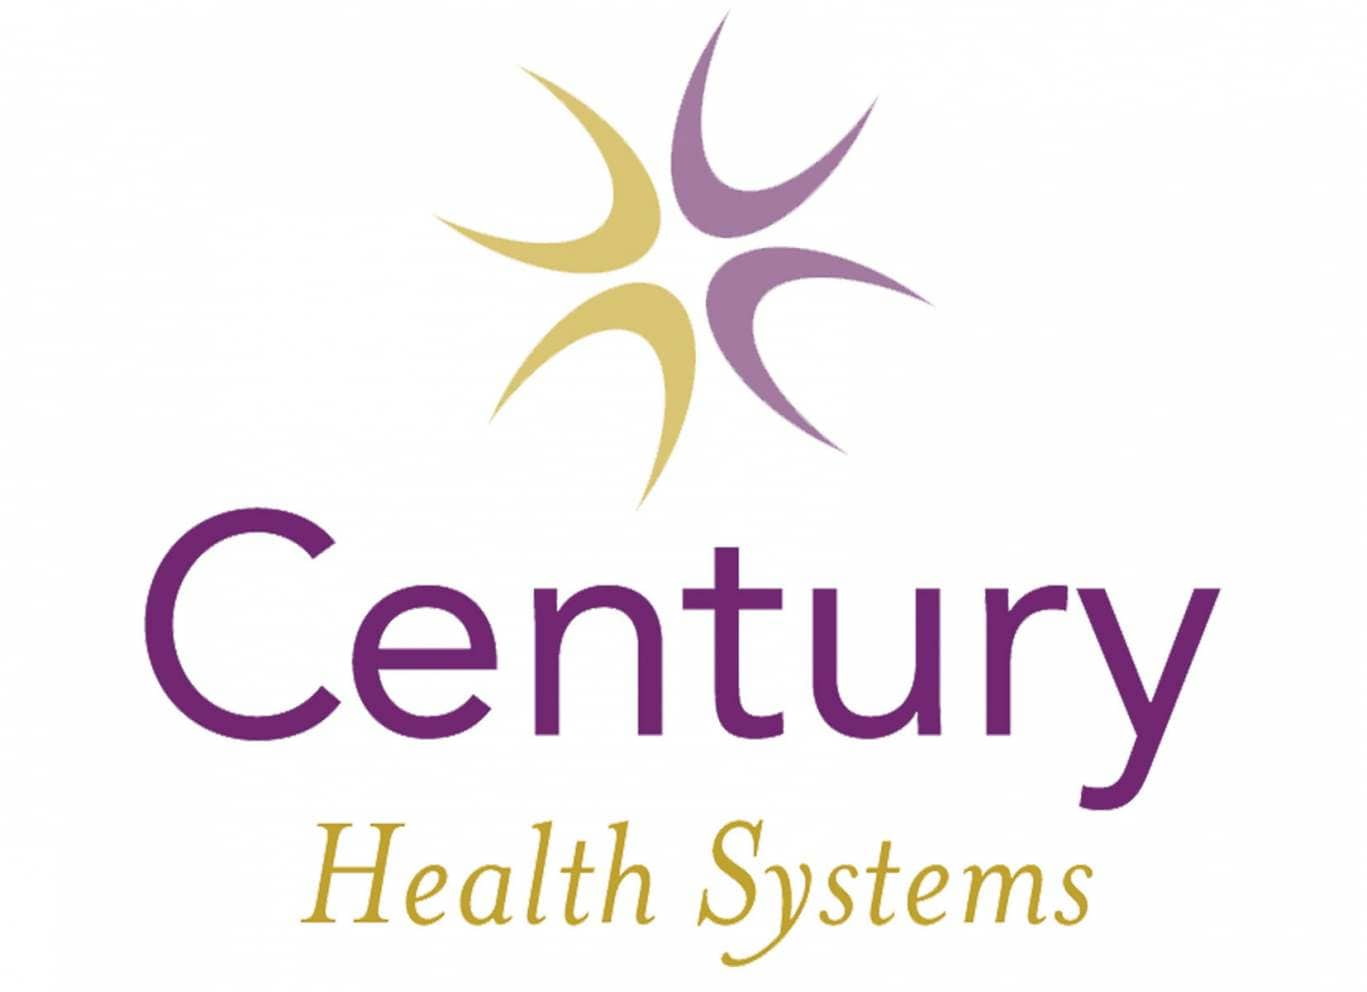 Century Health Systems healthcare logo